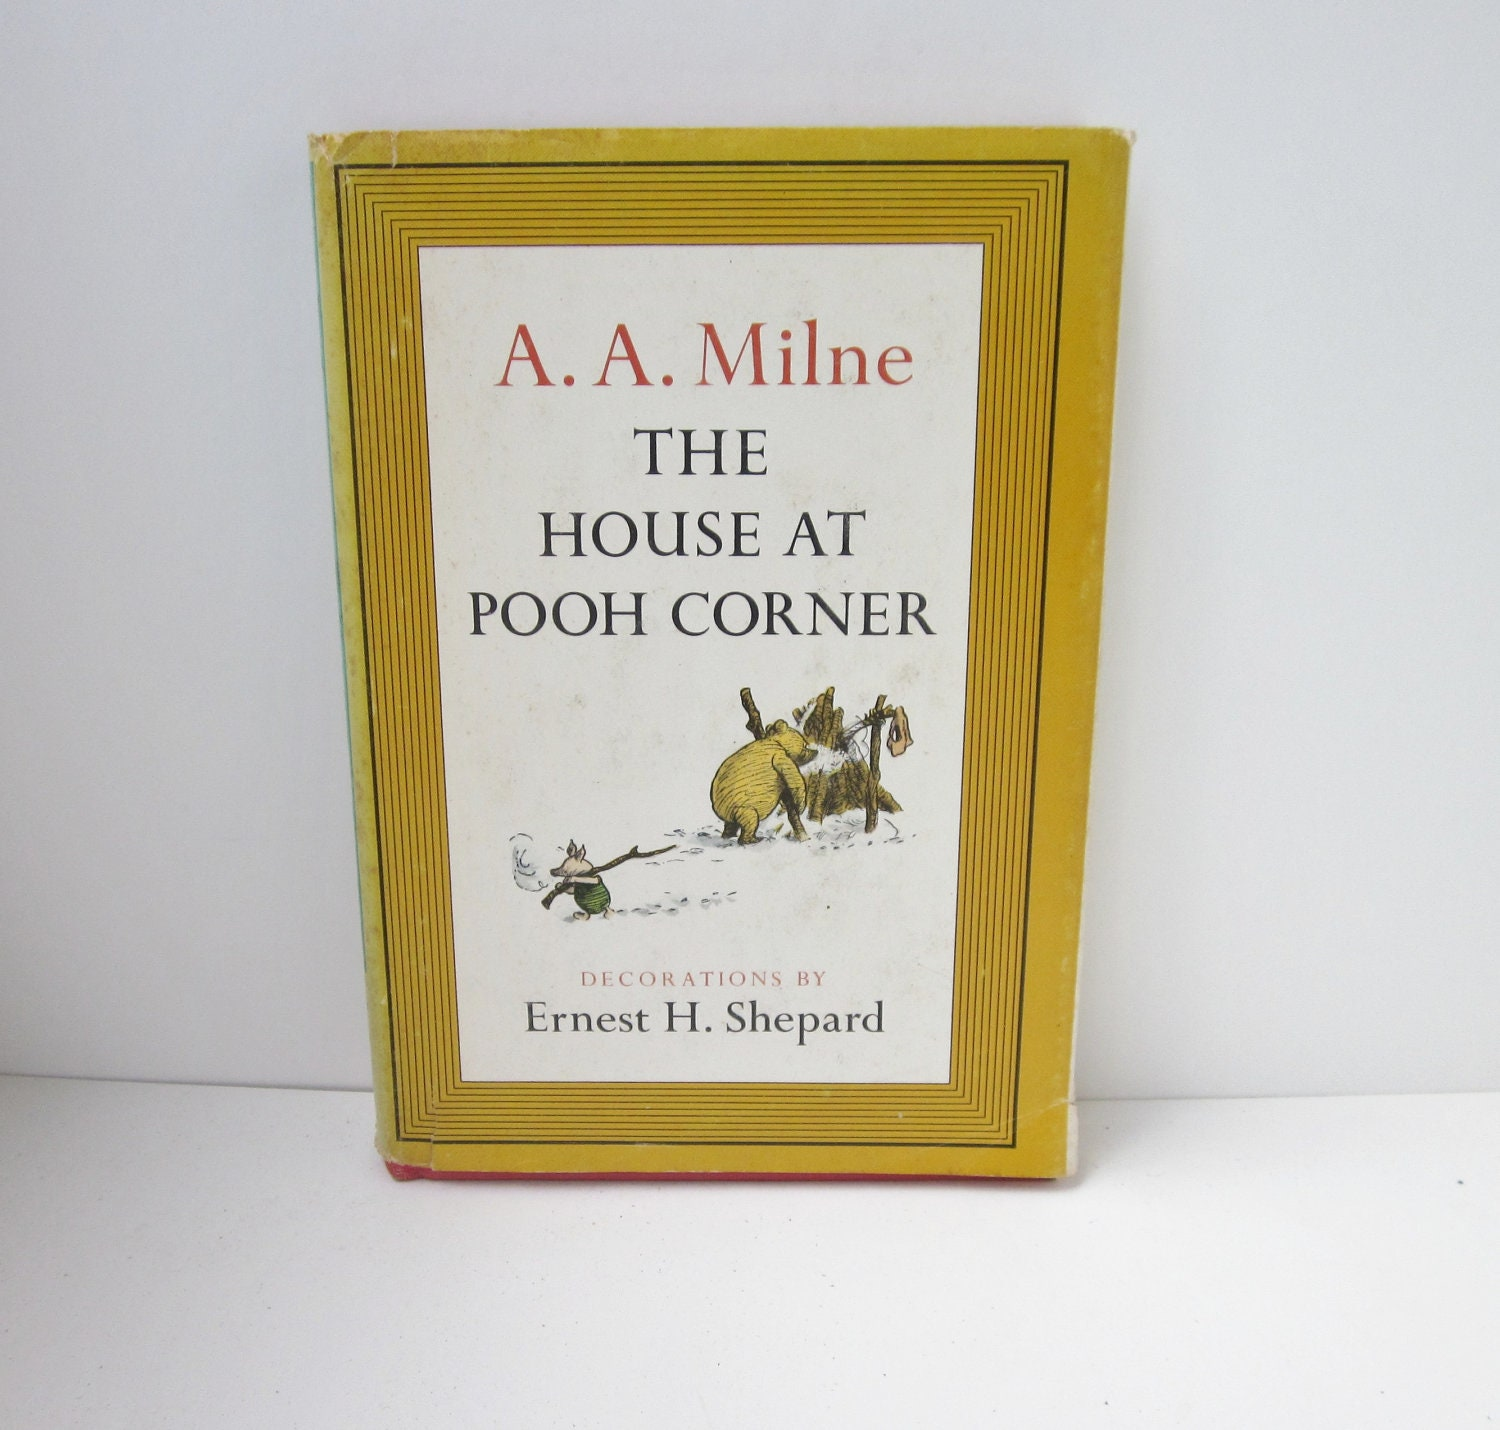 vintage 1961 the house at pooh corner by a a milne